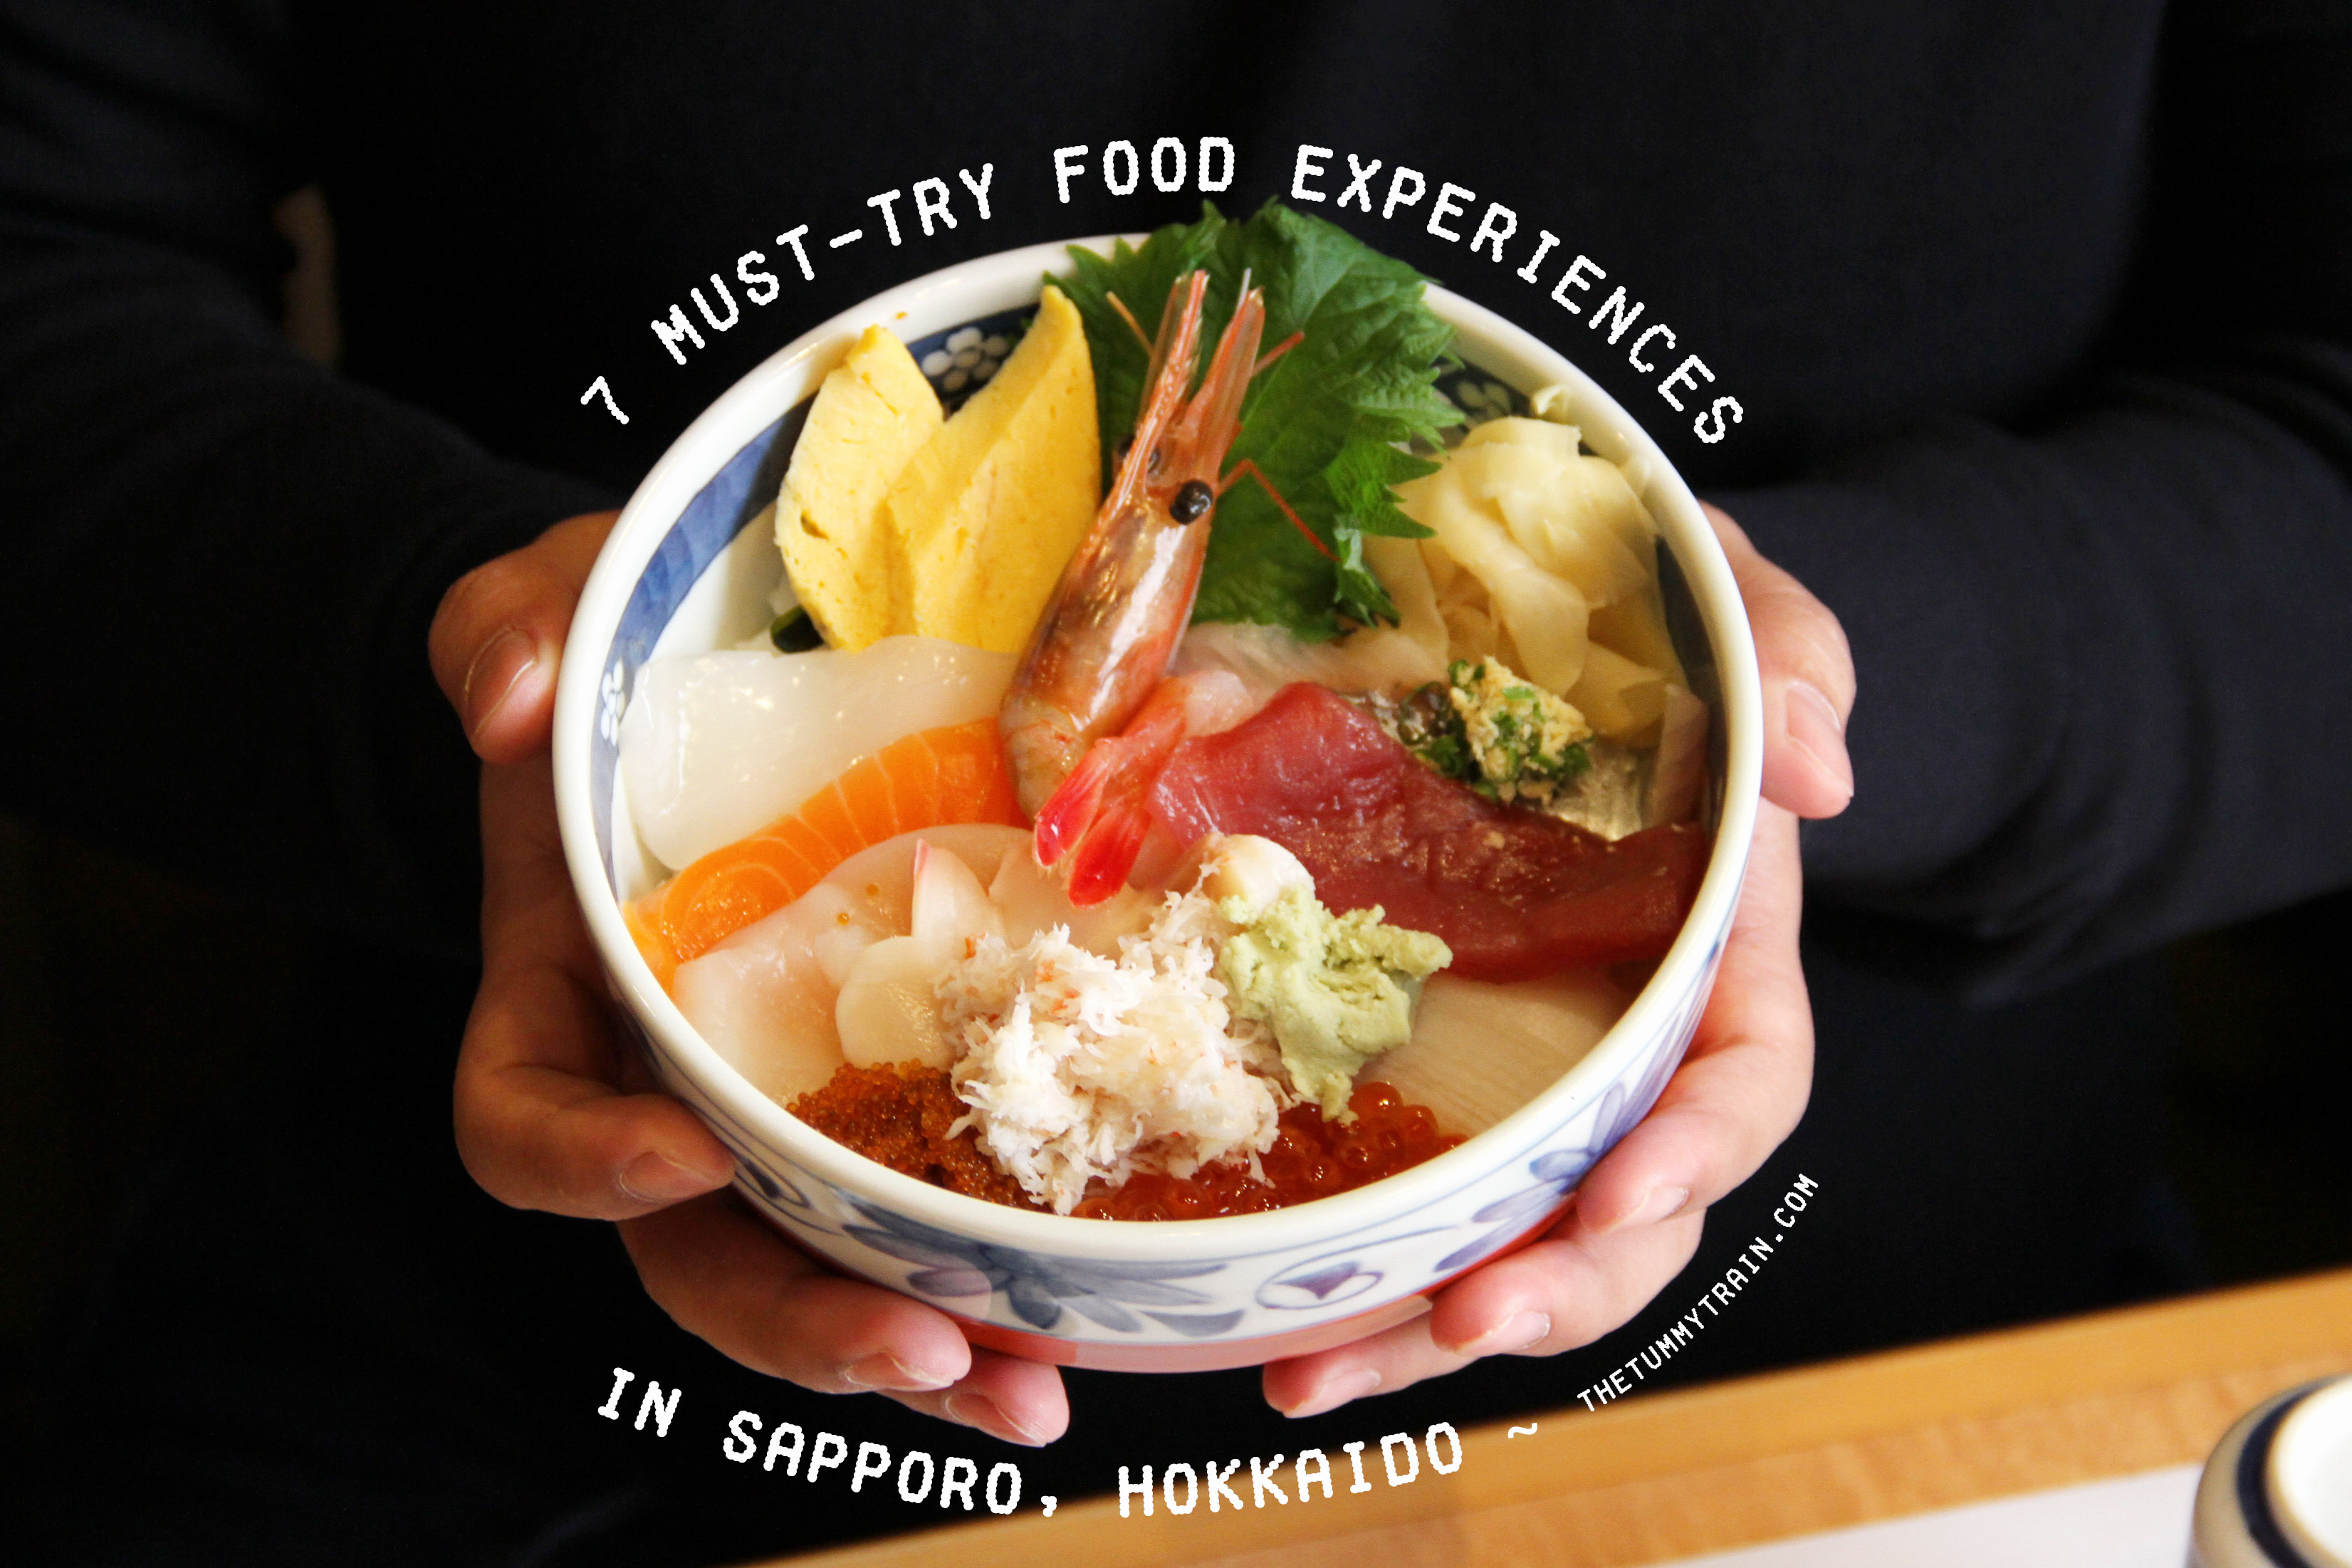 Food Experience Cover - 7 Foodie Experiences To Try for Your Sapporo Adventure